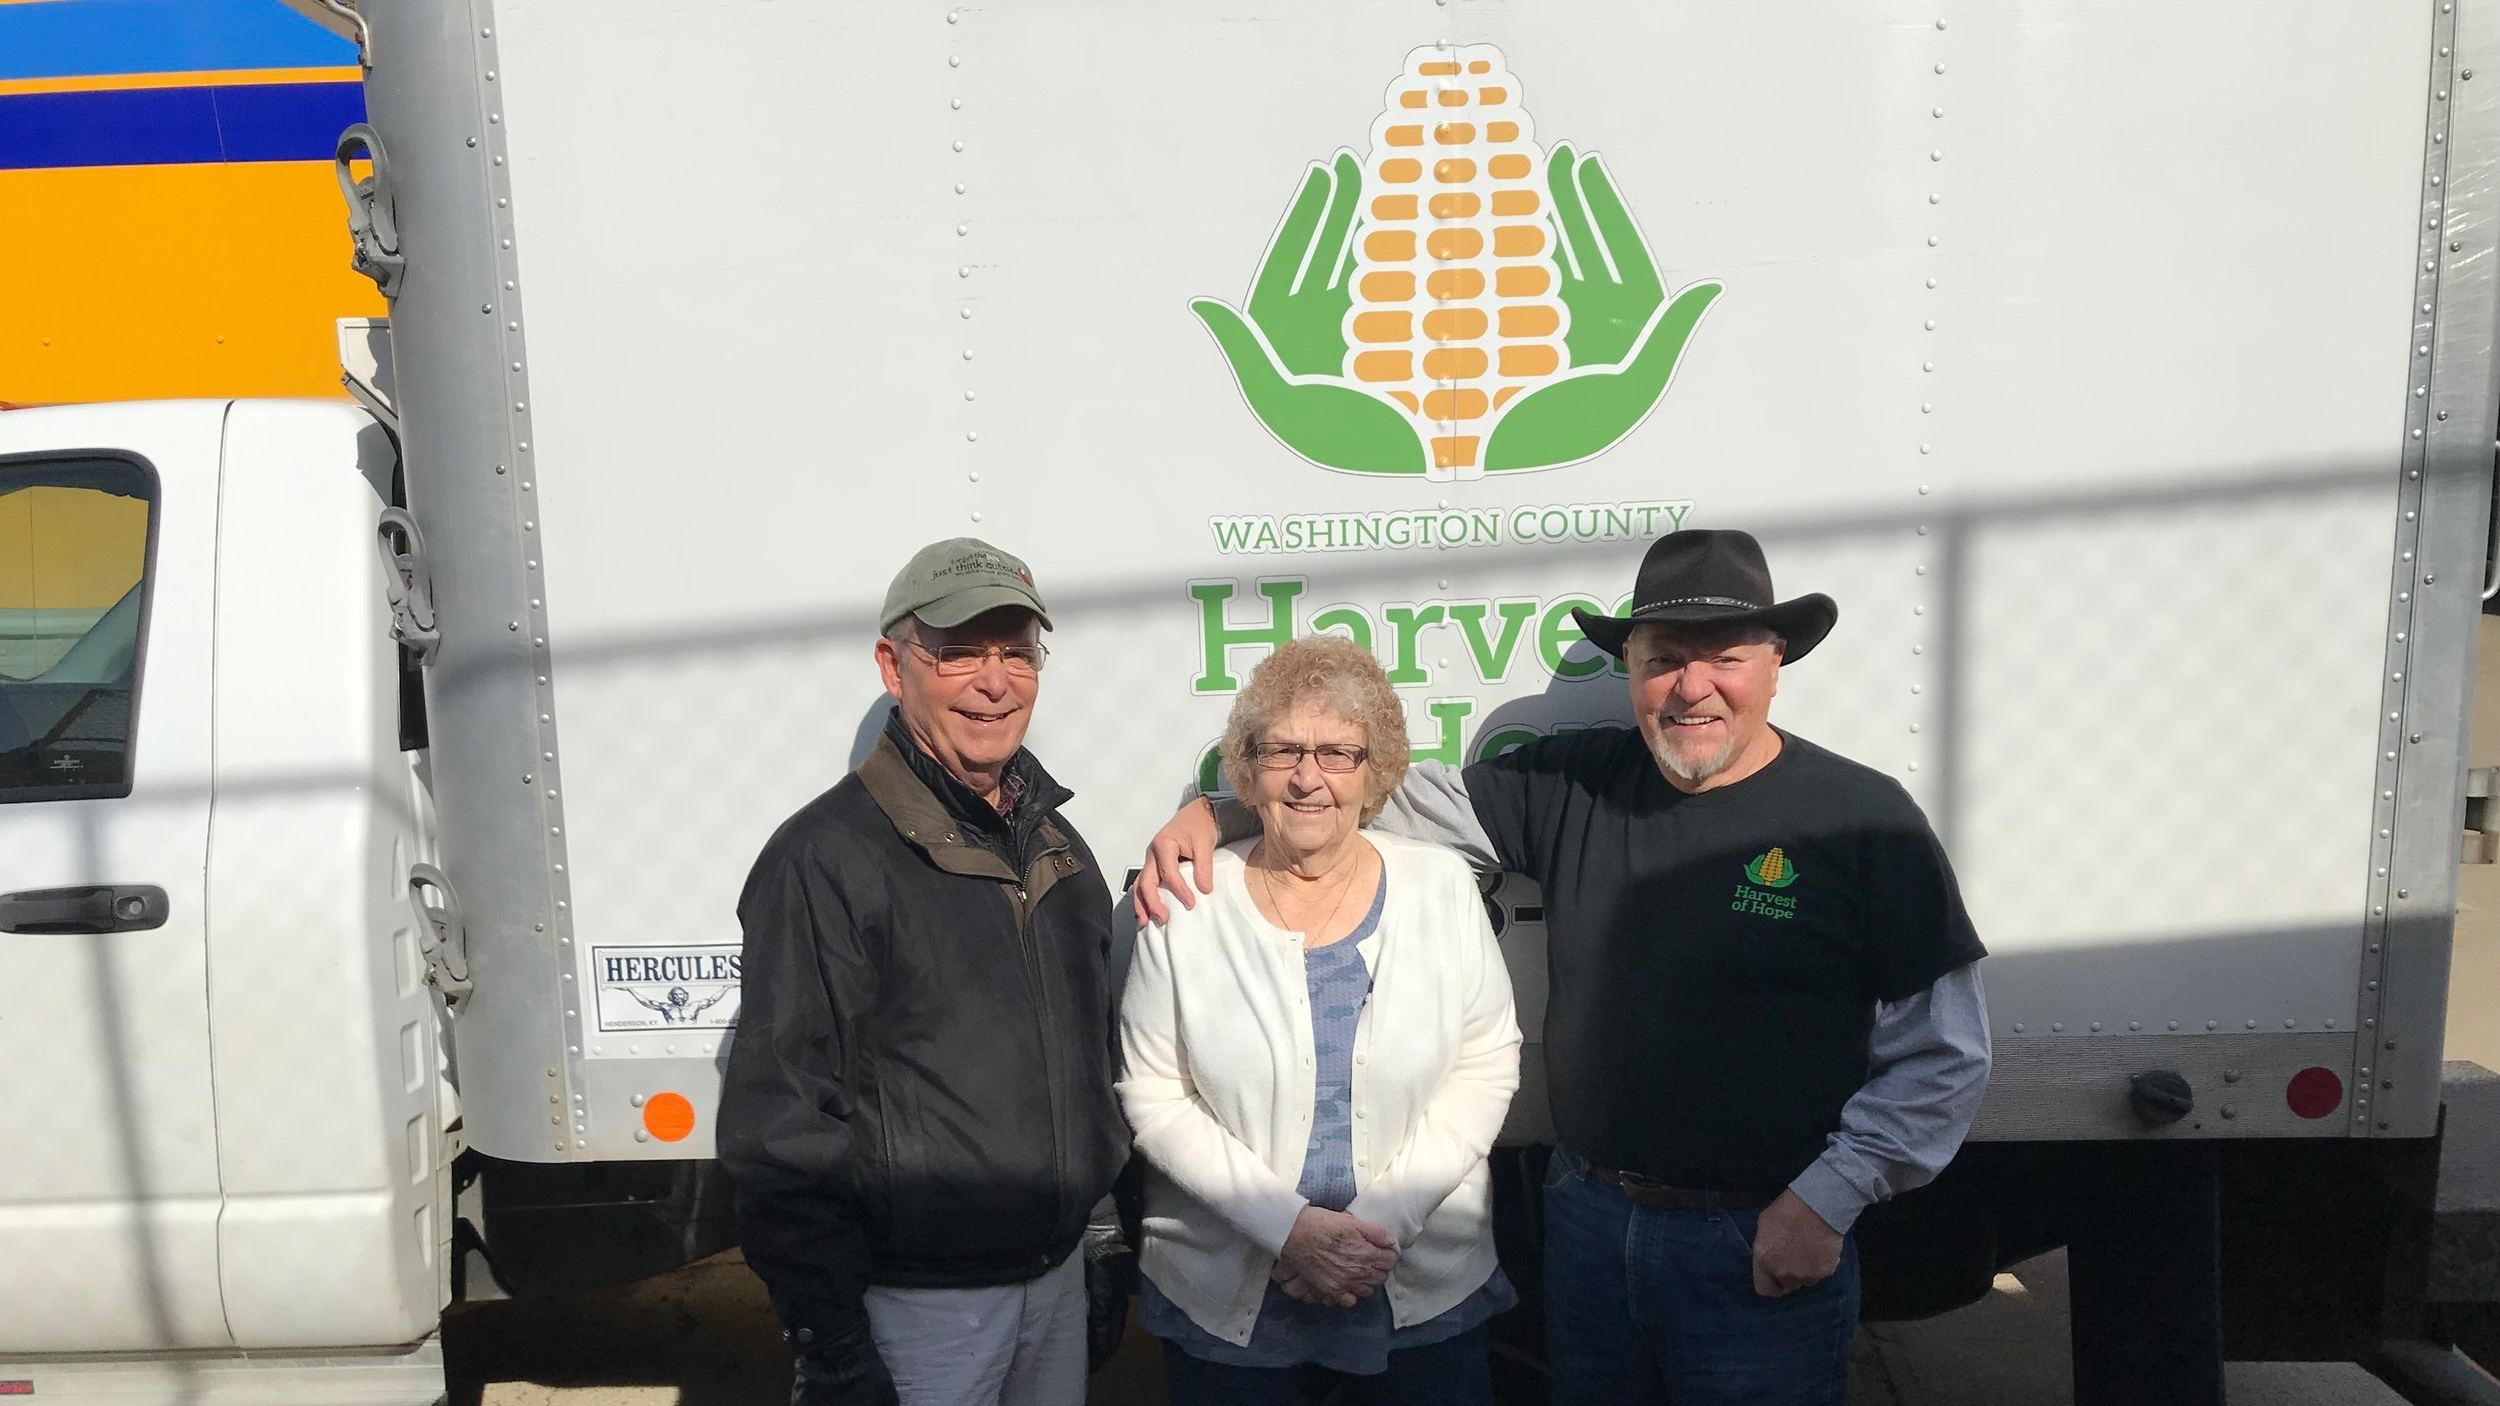 From left to right: Joe Baker (Harvest of Hope), Ruth Griffin (Director of Tri-County Food Pantry), LeRoy McCarty (Harvest of Hope Volunteer)